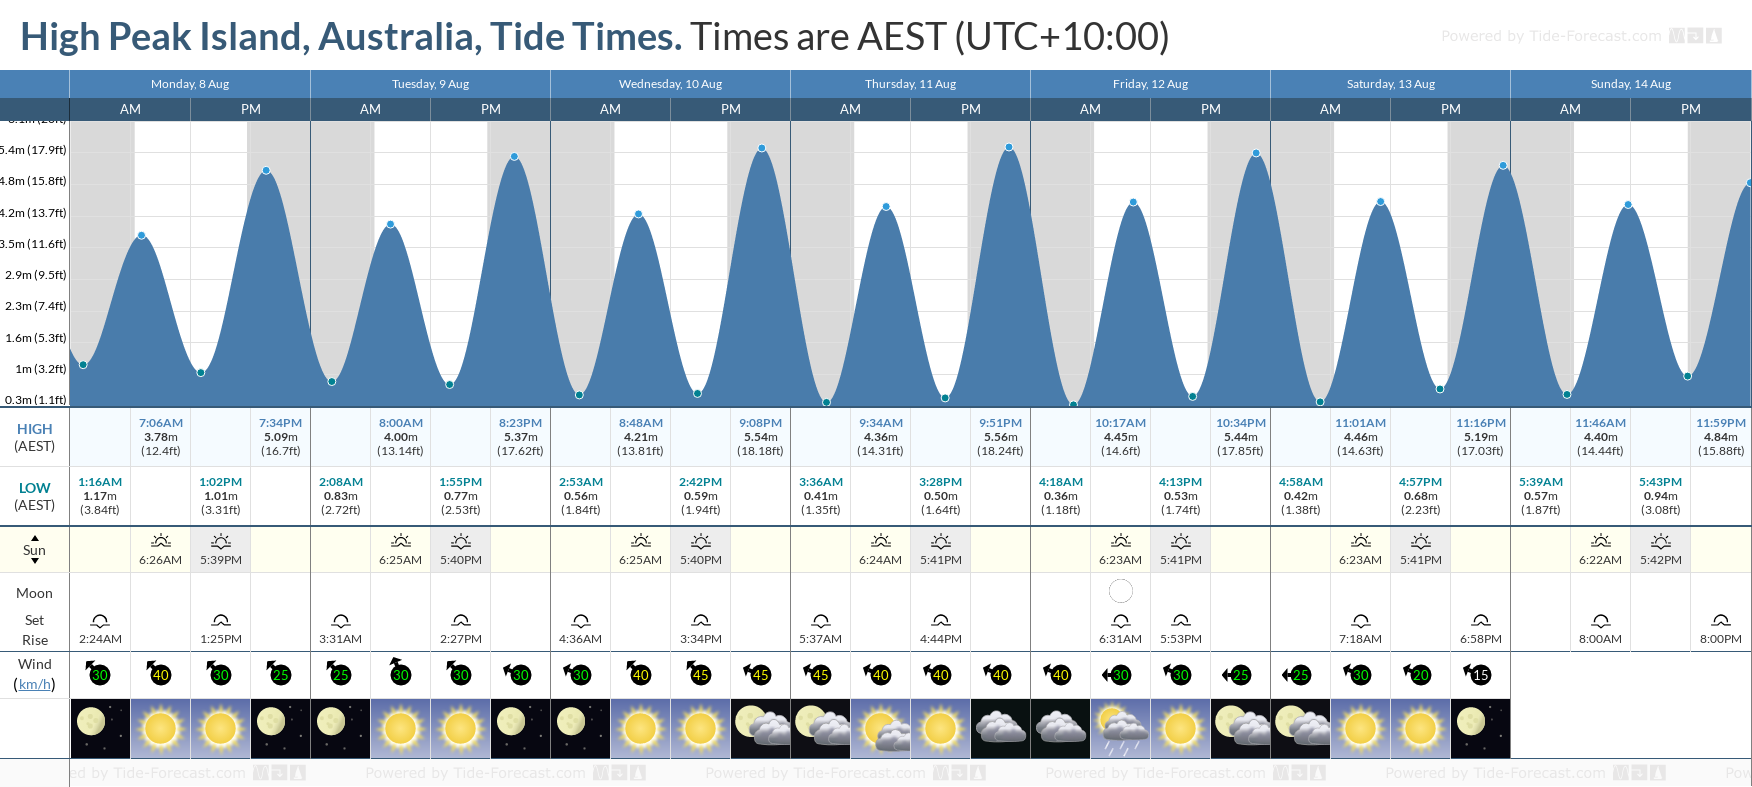 High Peak Island, Australia Tide Chart including high and low tide tide times for the next 7 days